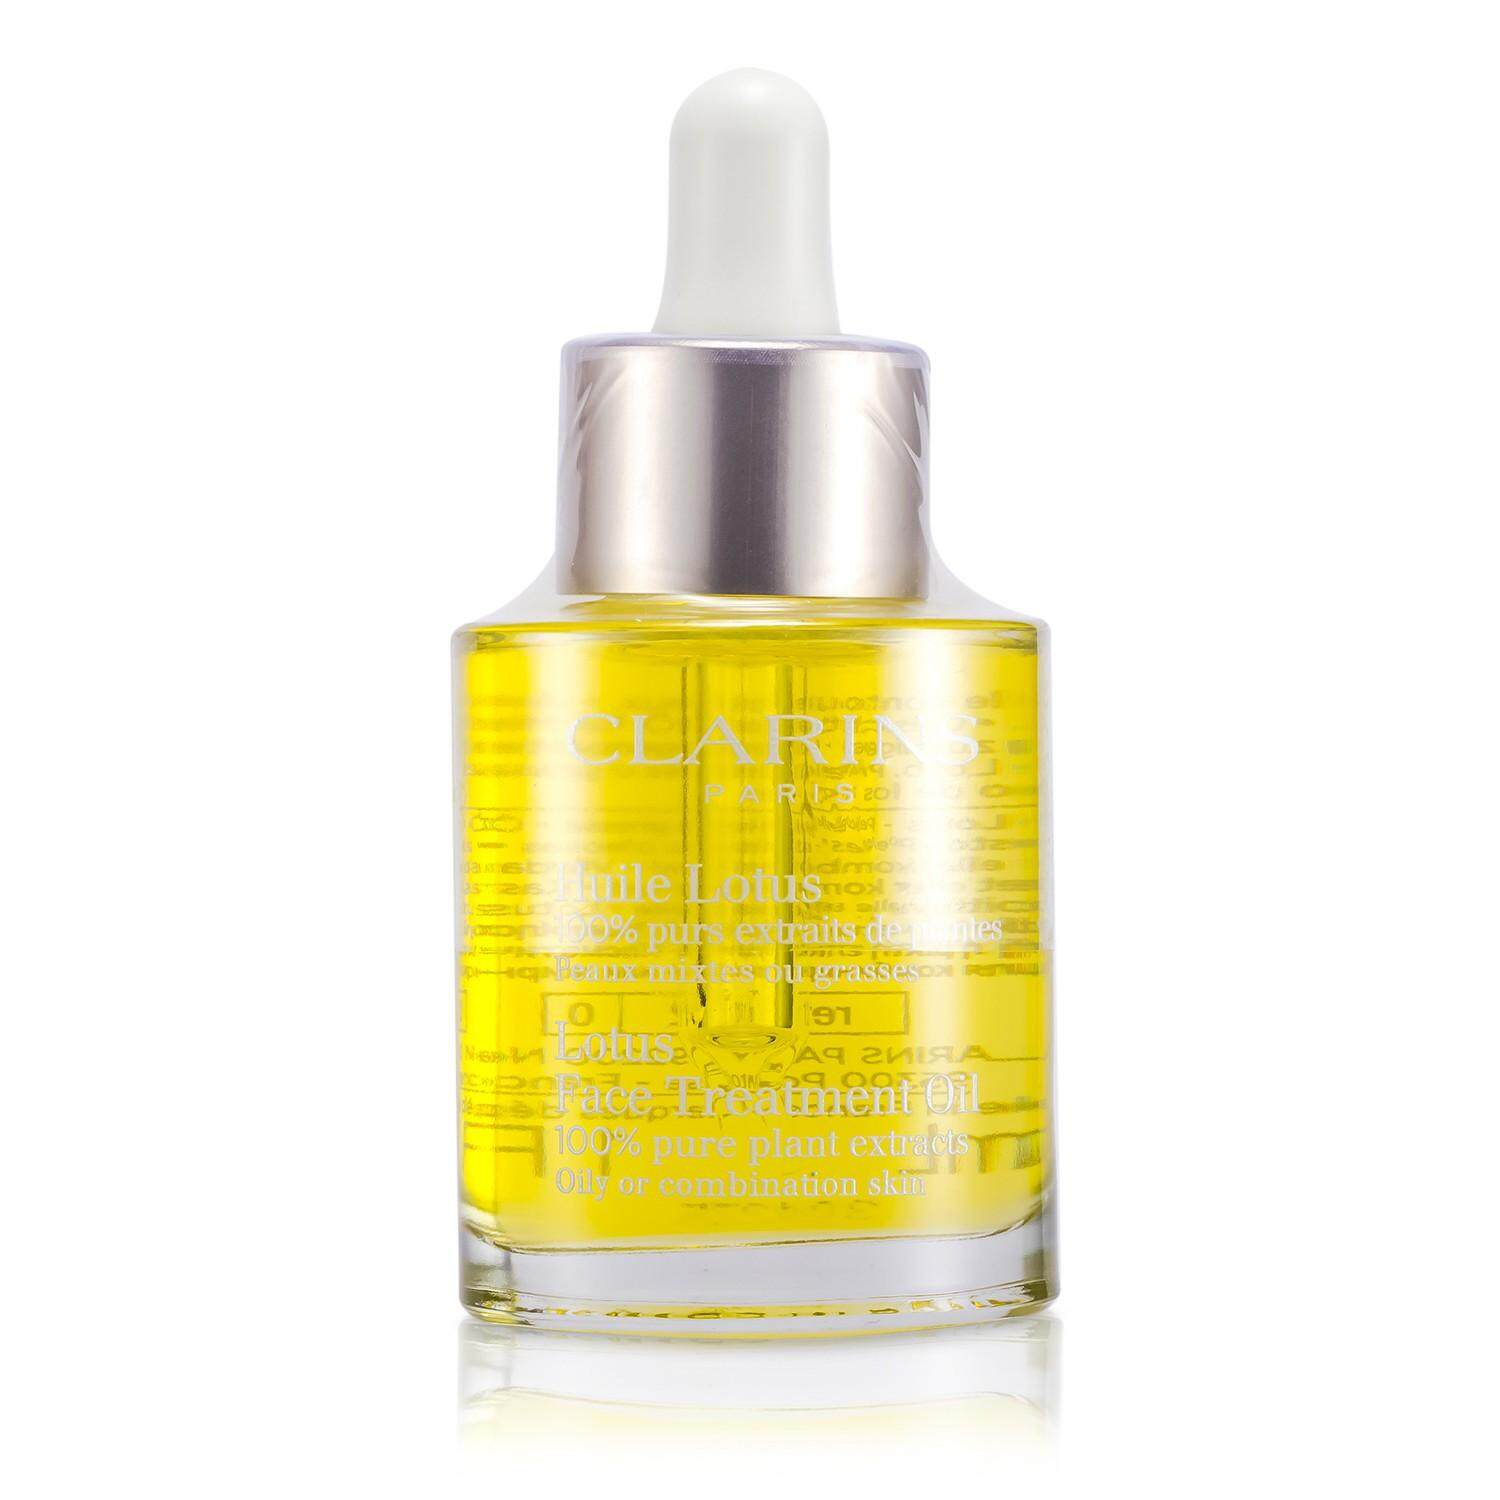 Features Clarins Face Treatment Oil Lotus For Oily Or Combination Hydraquench Cream Gel Normal To Skin 15ml 2